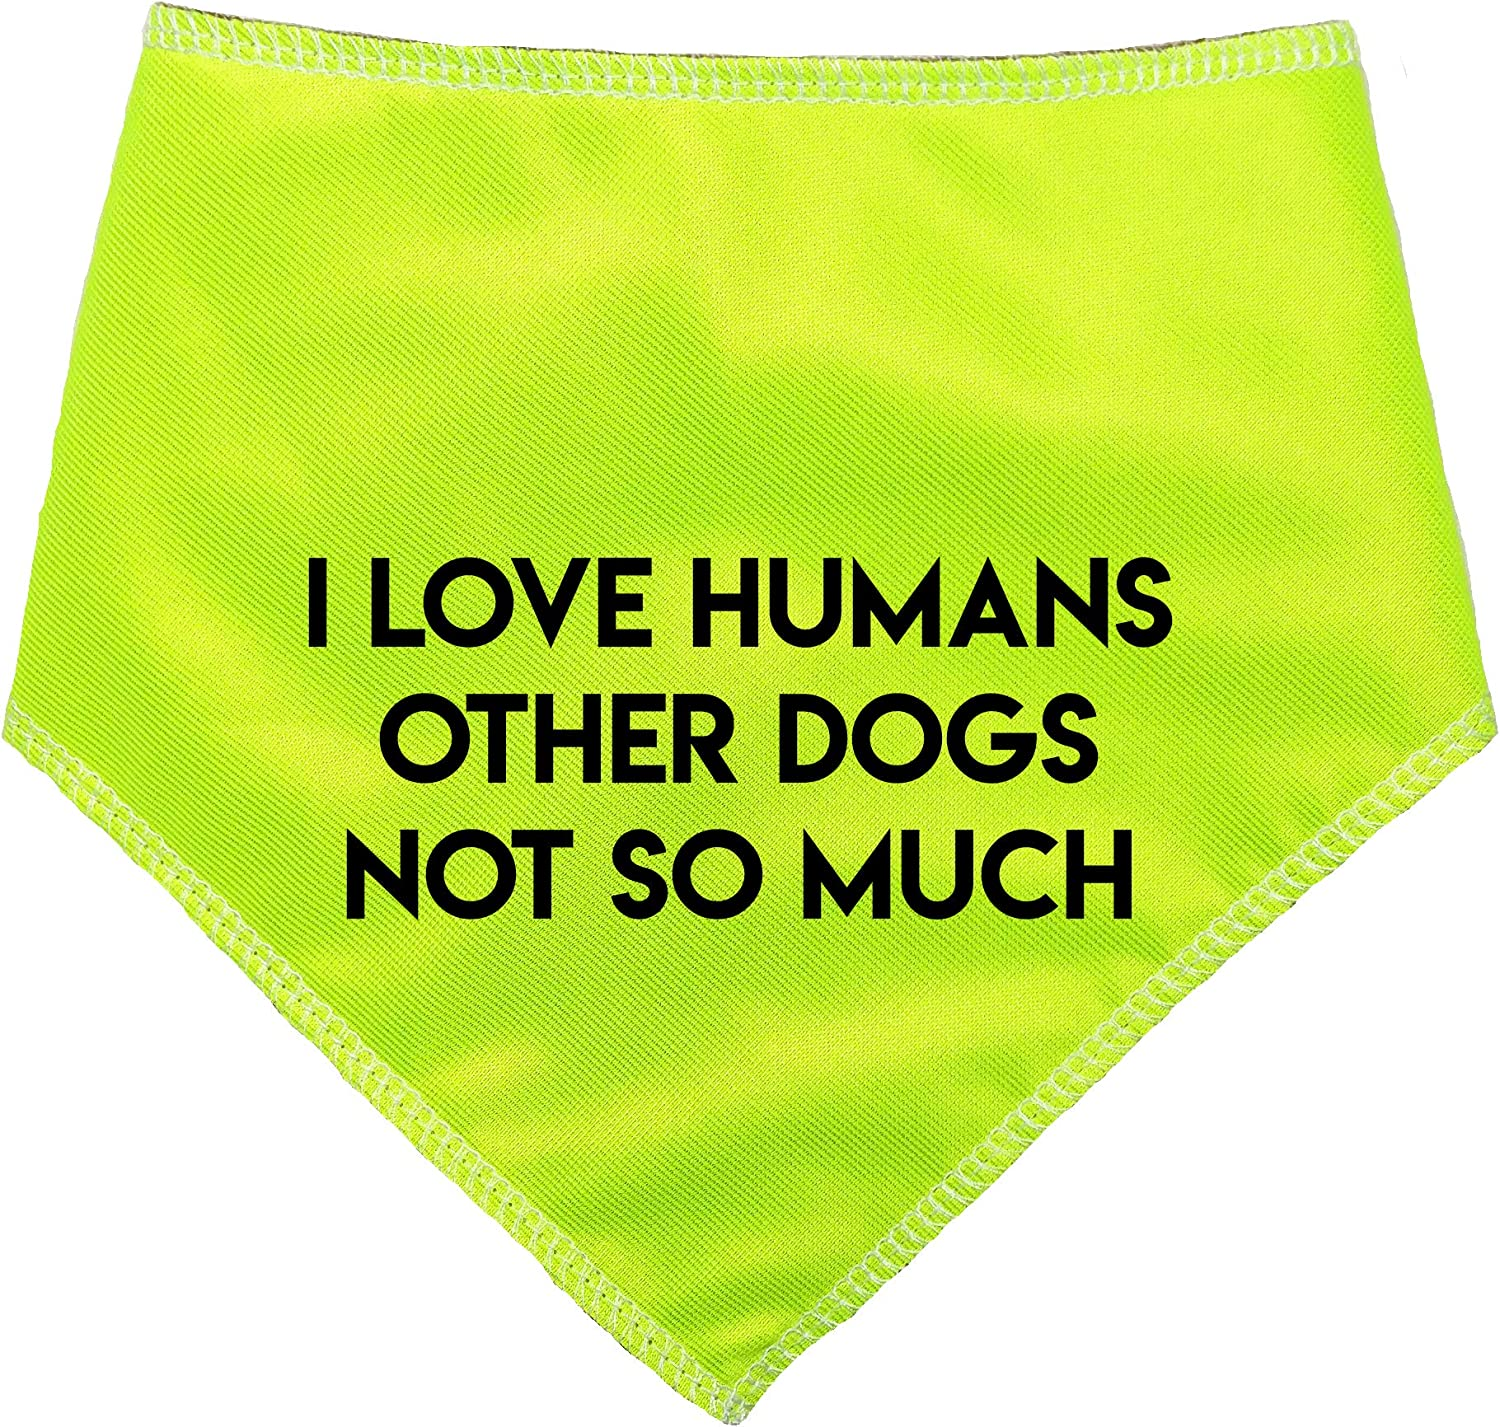 Miniature Dogs, Dachshunds /& Cats Spoilt Rotten Pets S1 I LOVE HUMANS OTHER DOGS NOT SO MUCH Alert Warning Dog Bandana HI VIZ For Grumpy Dogs